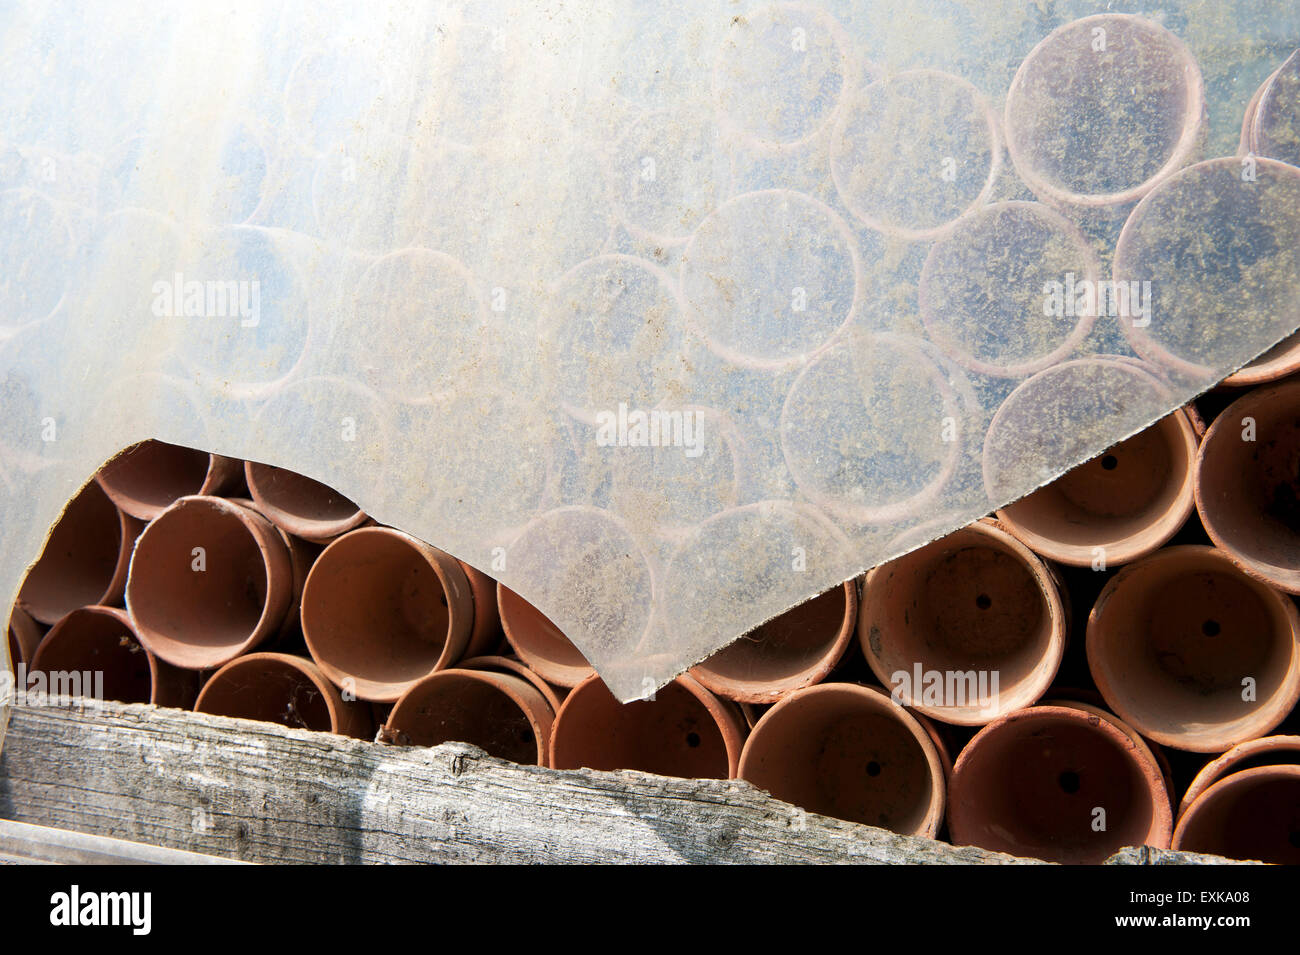 Clay pots in green house - Stock Image